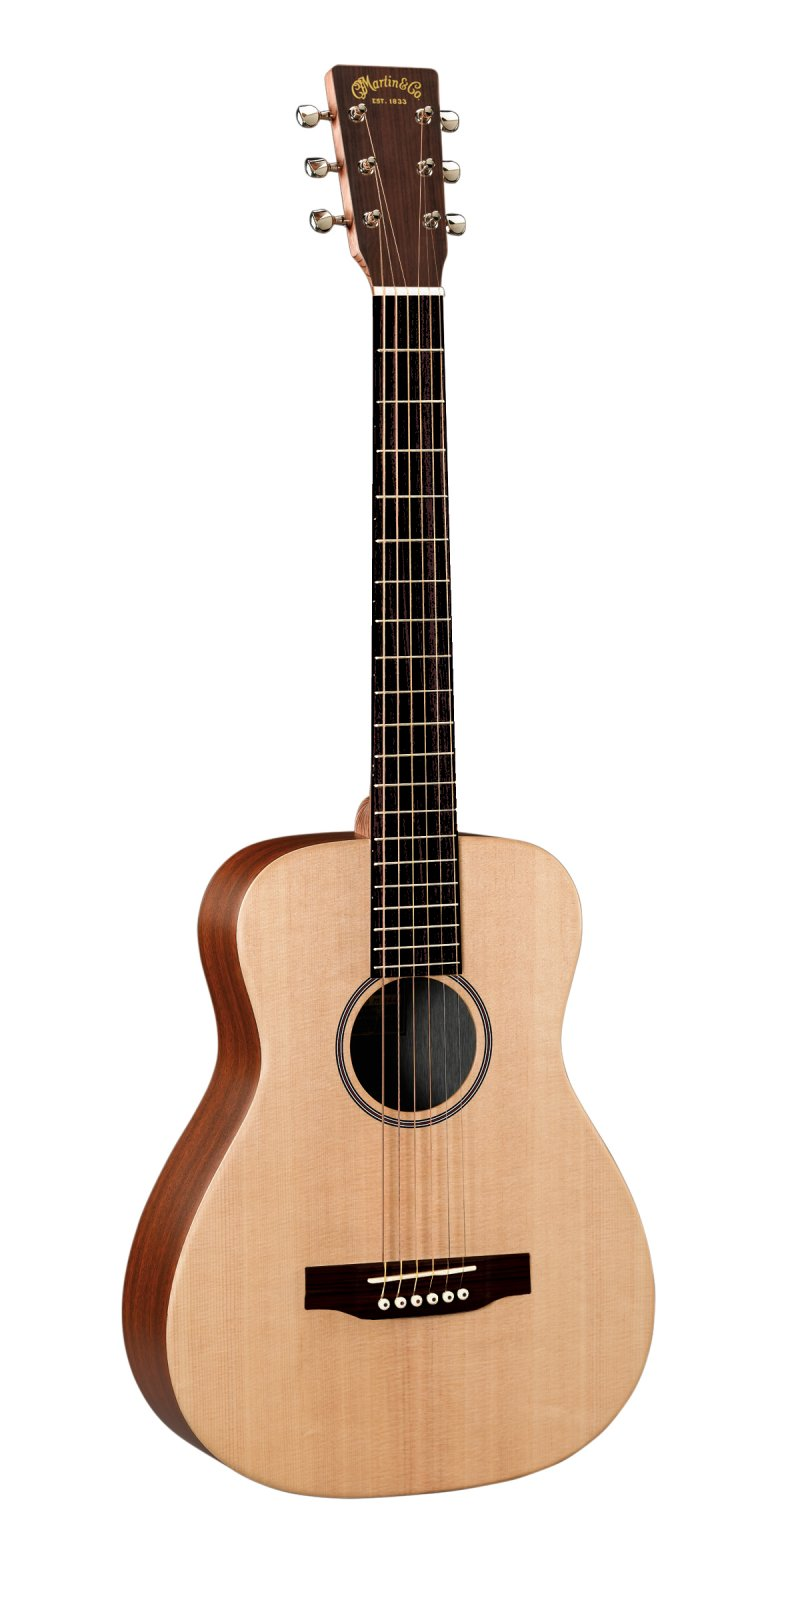 Martin LX1 Little Martin Acoustic Guitar with Gigbag